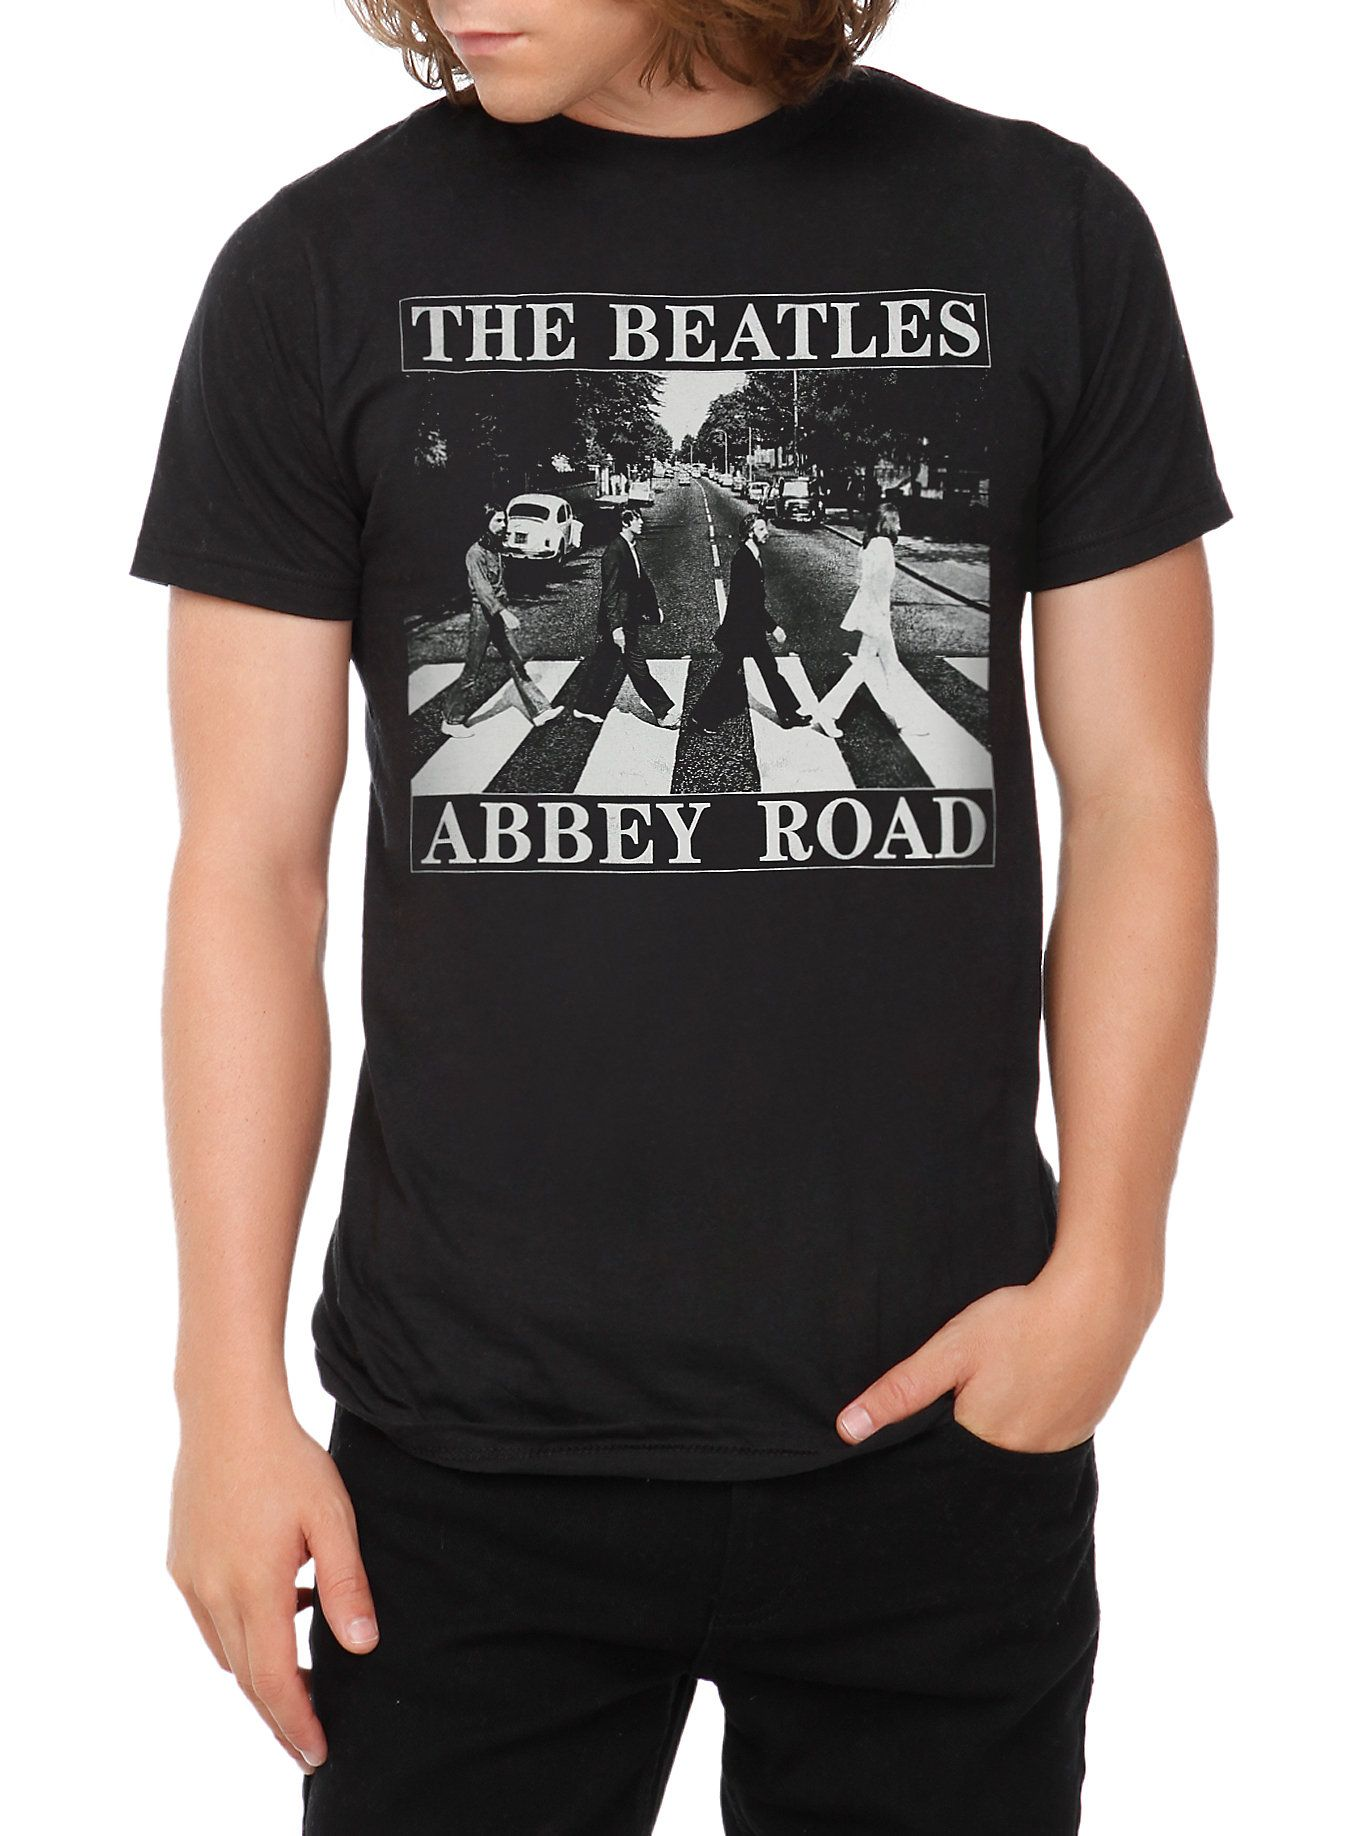 e8bdb01e The Beatles Abbey Road T-Shirt | Christmas Gift Ideas | Shirts, Tour ...